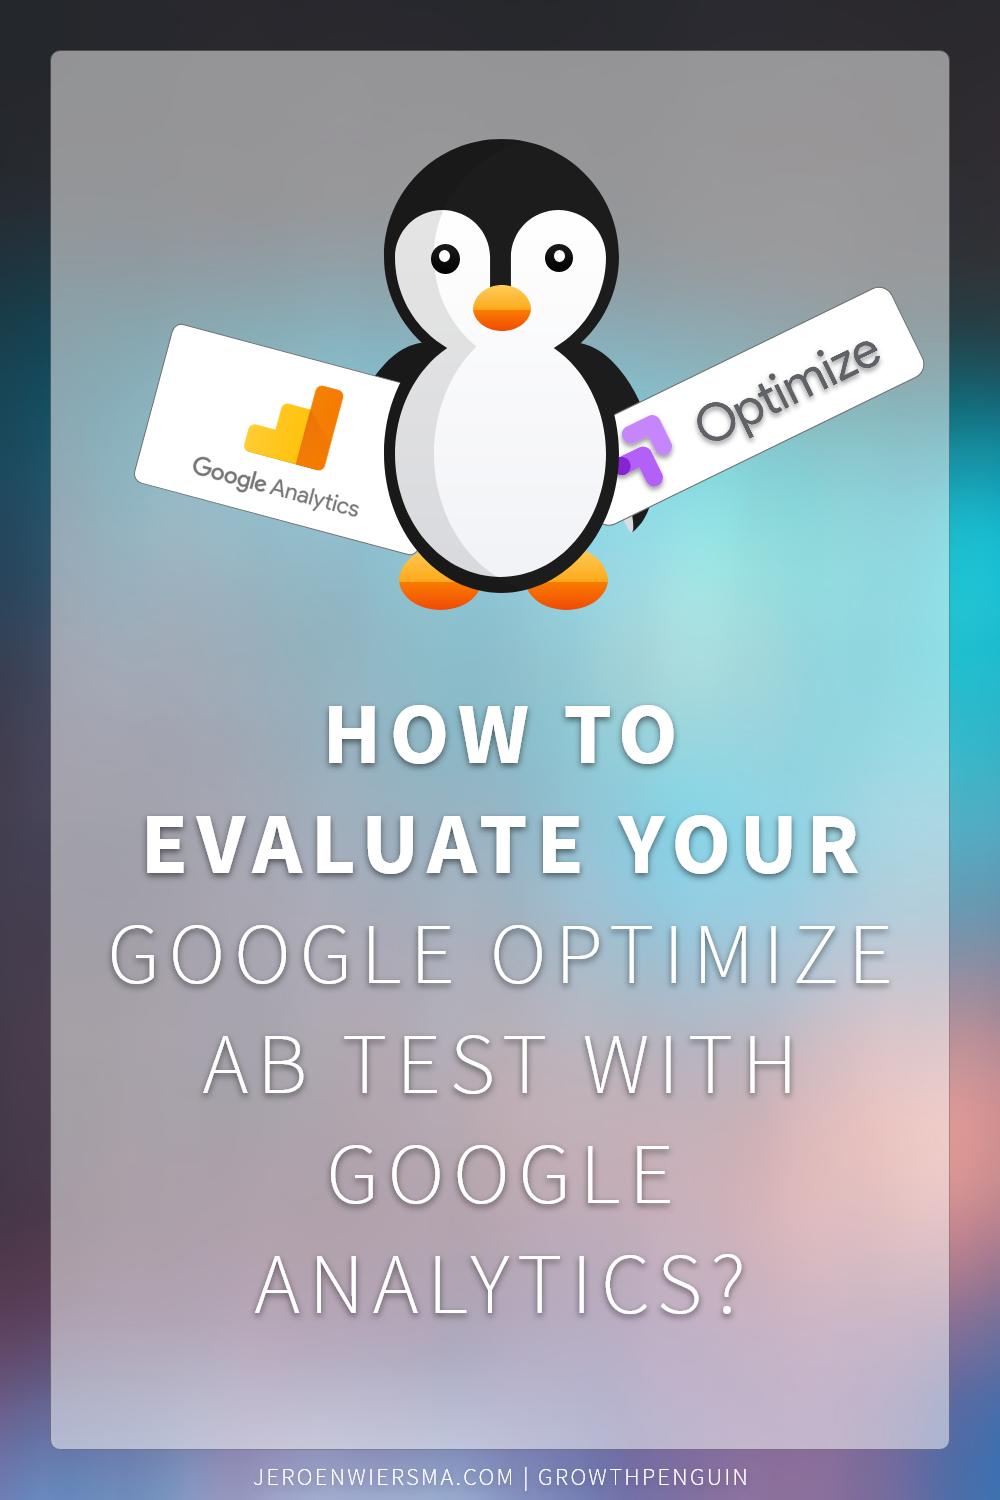 How to evaluate your Google Optimize ab test with Google Analytics